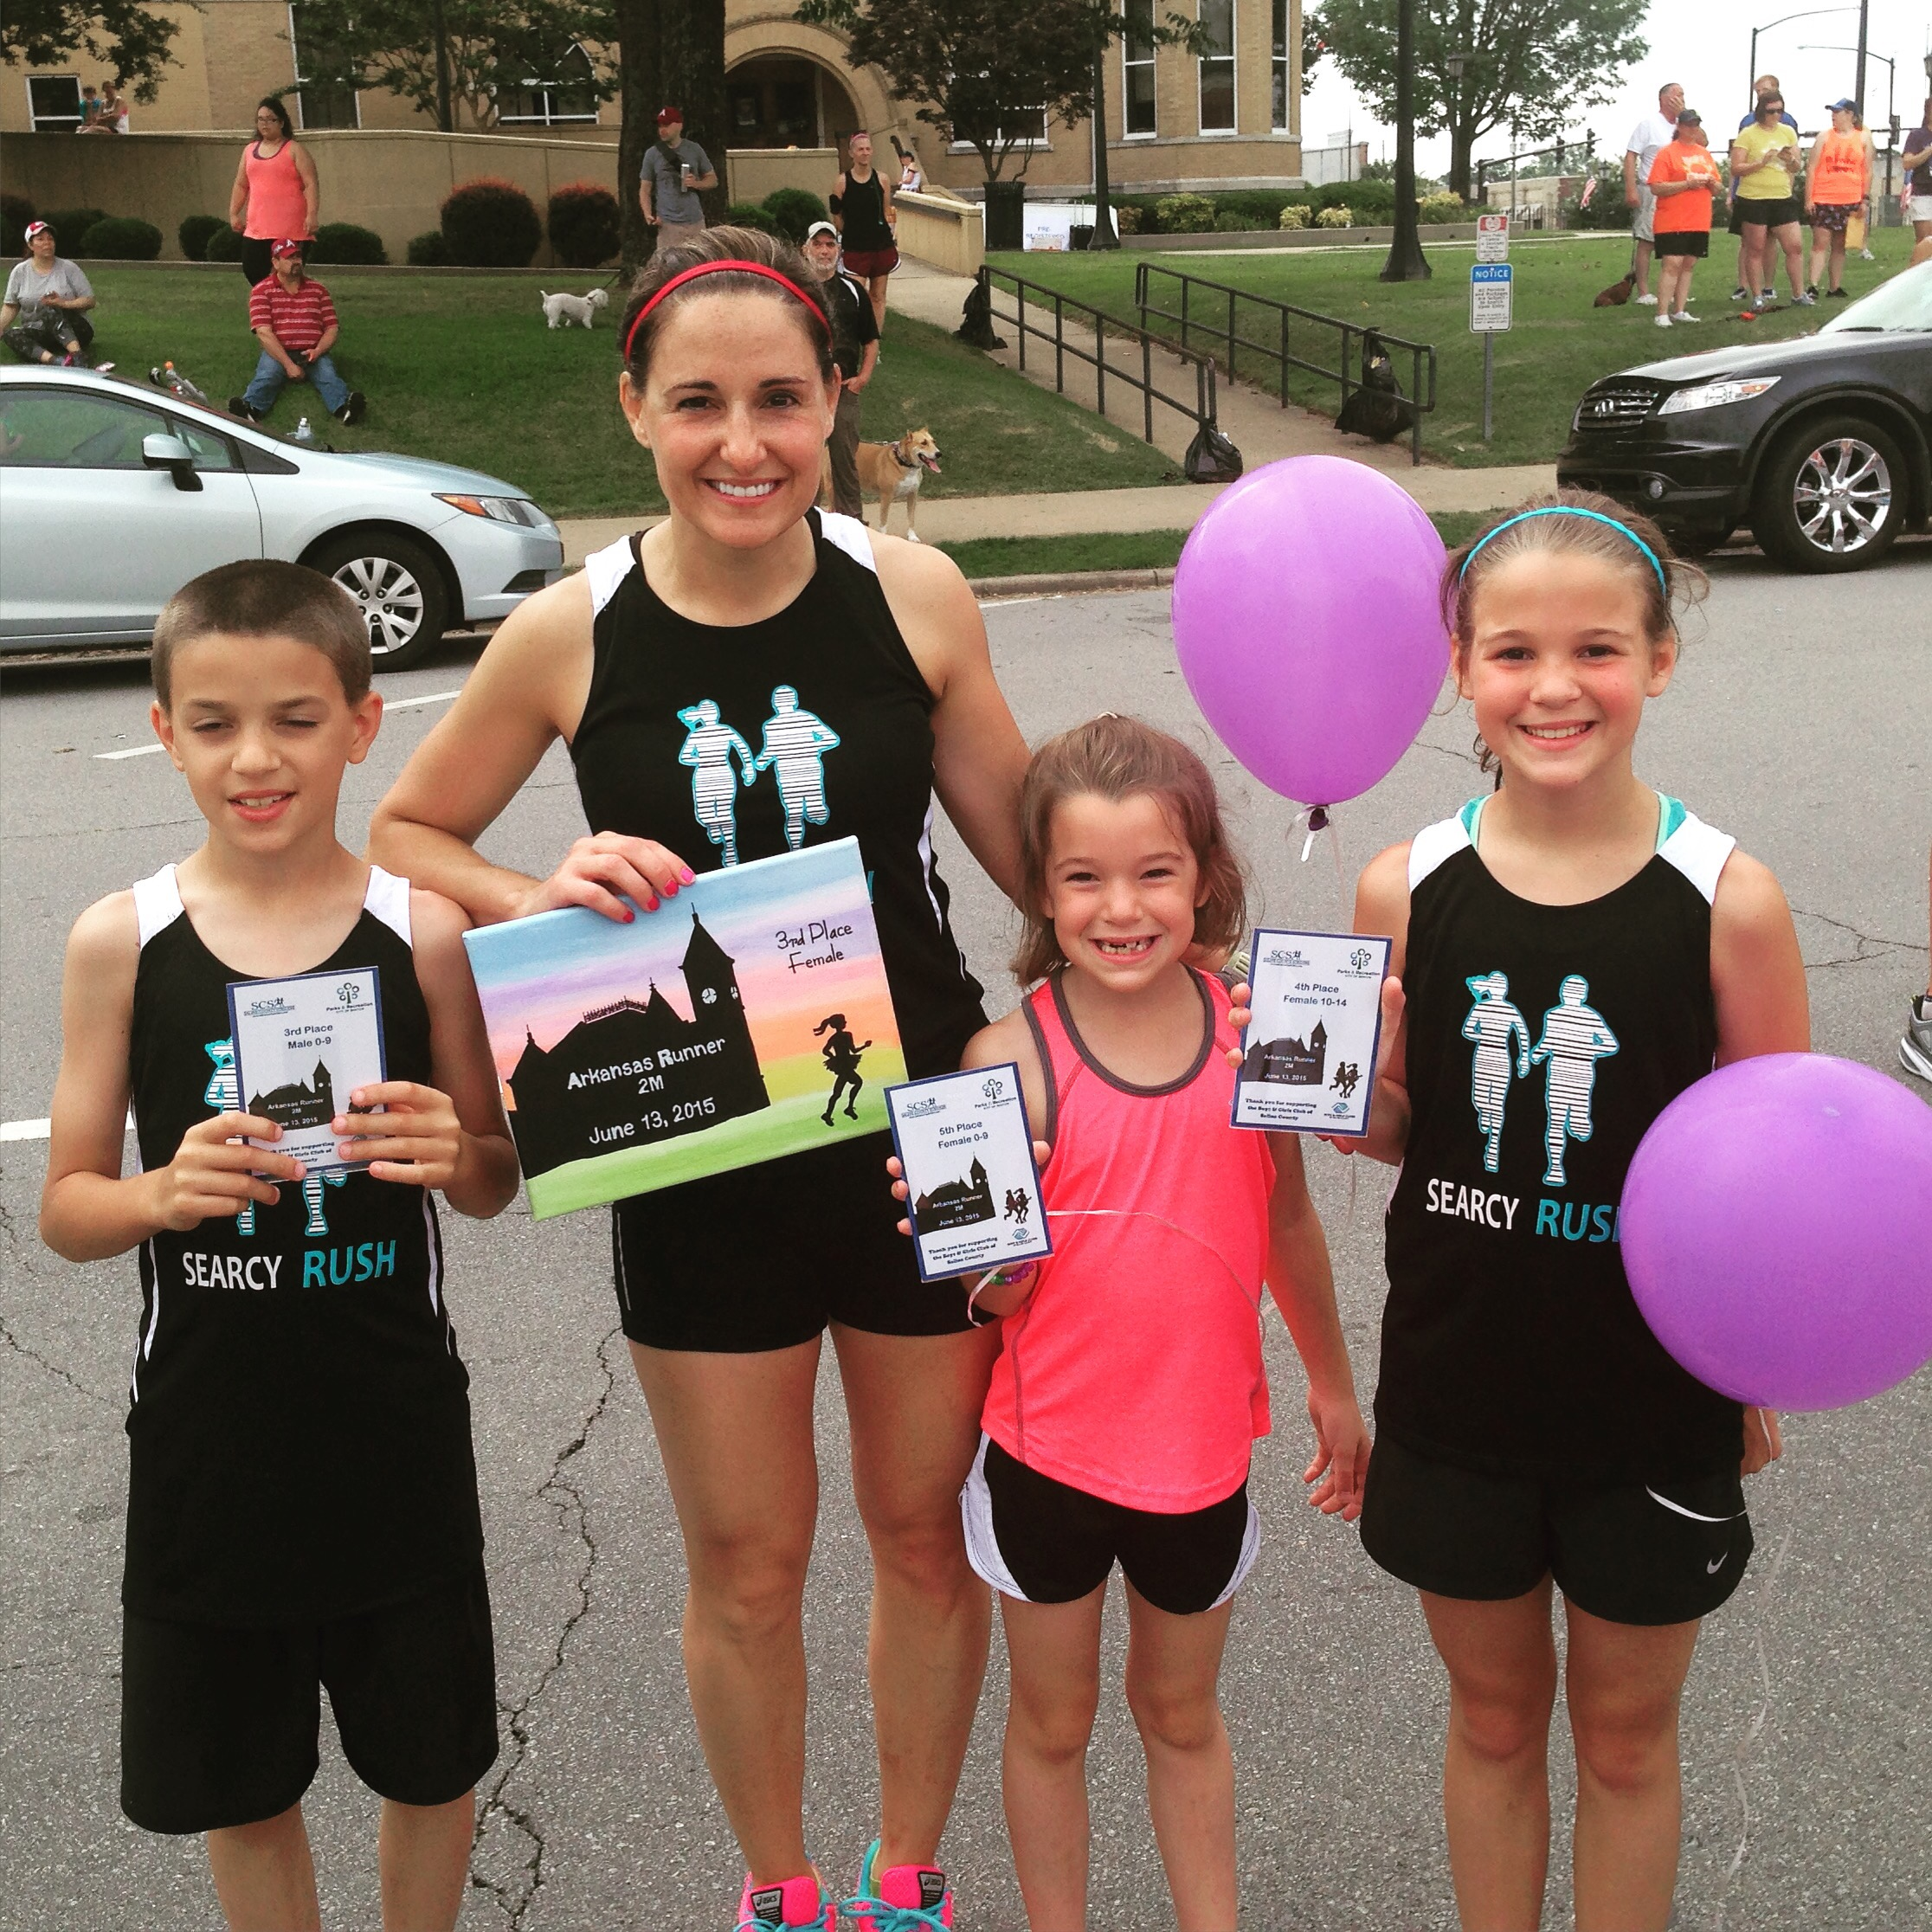 Arkansas Runner 2 Mile Race Report 2015